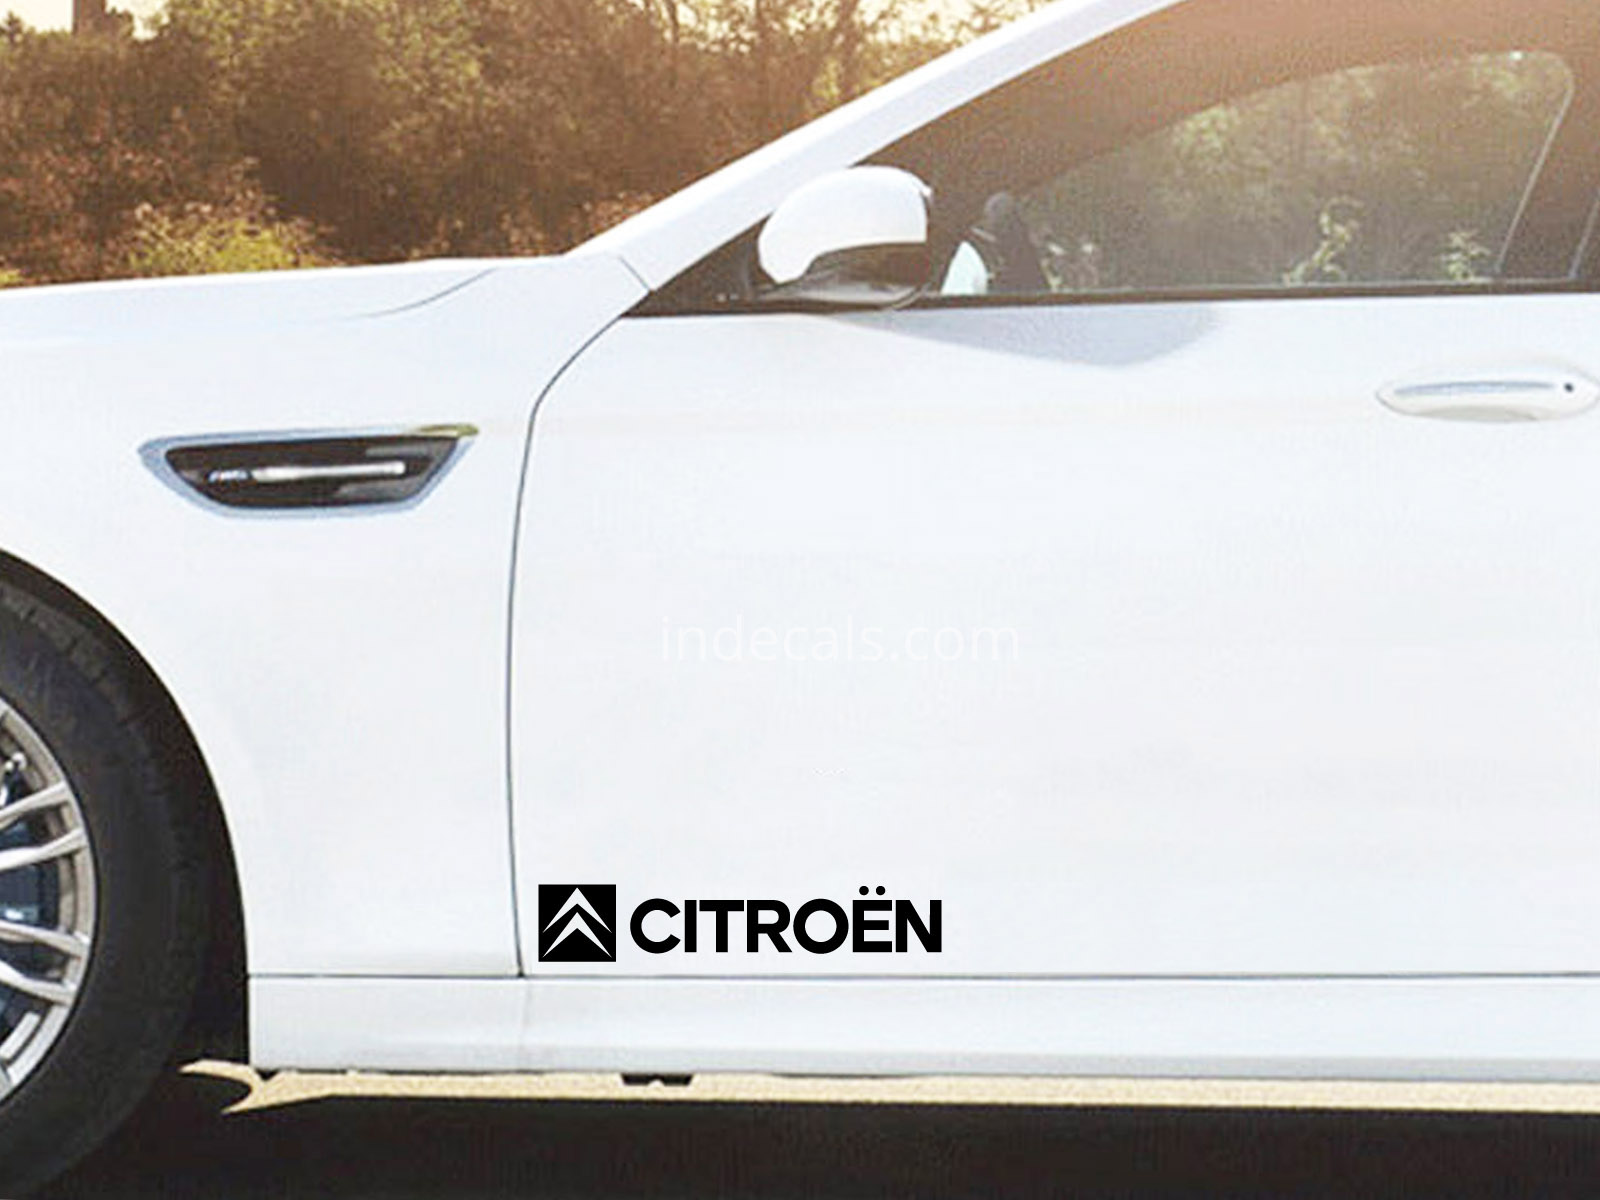 2 x Citroen Stickers for Doors Large - Black